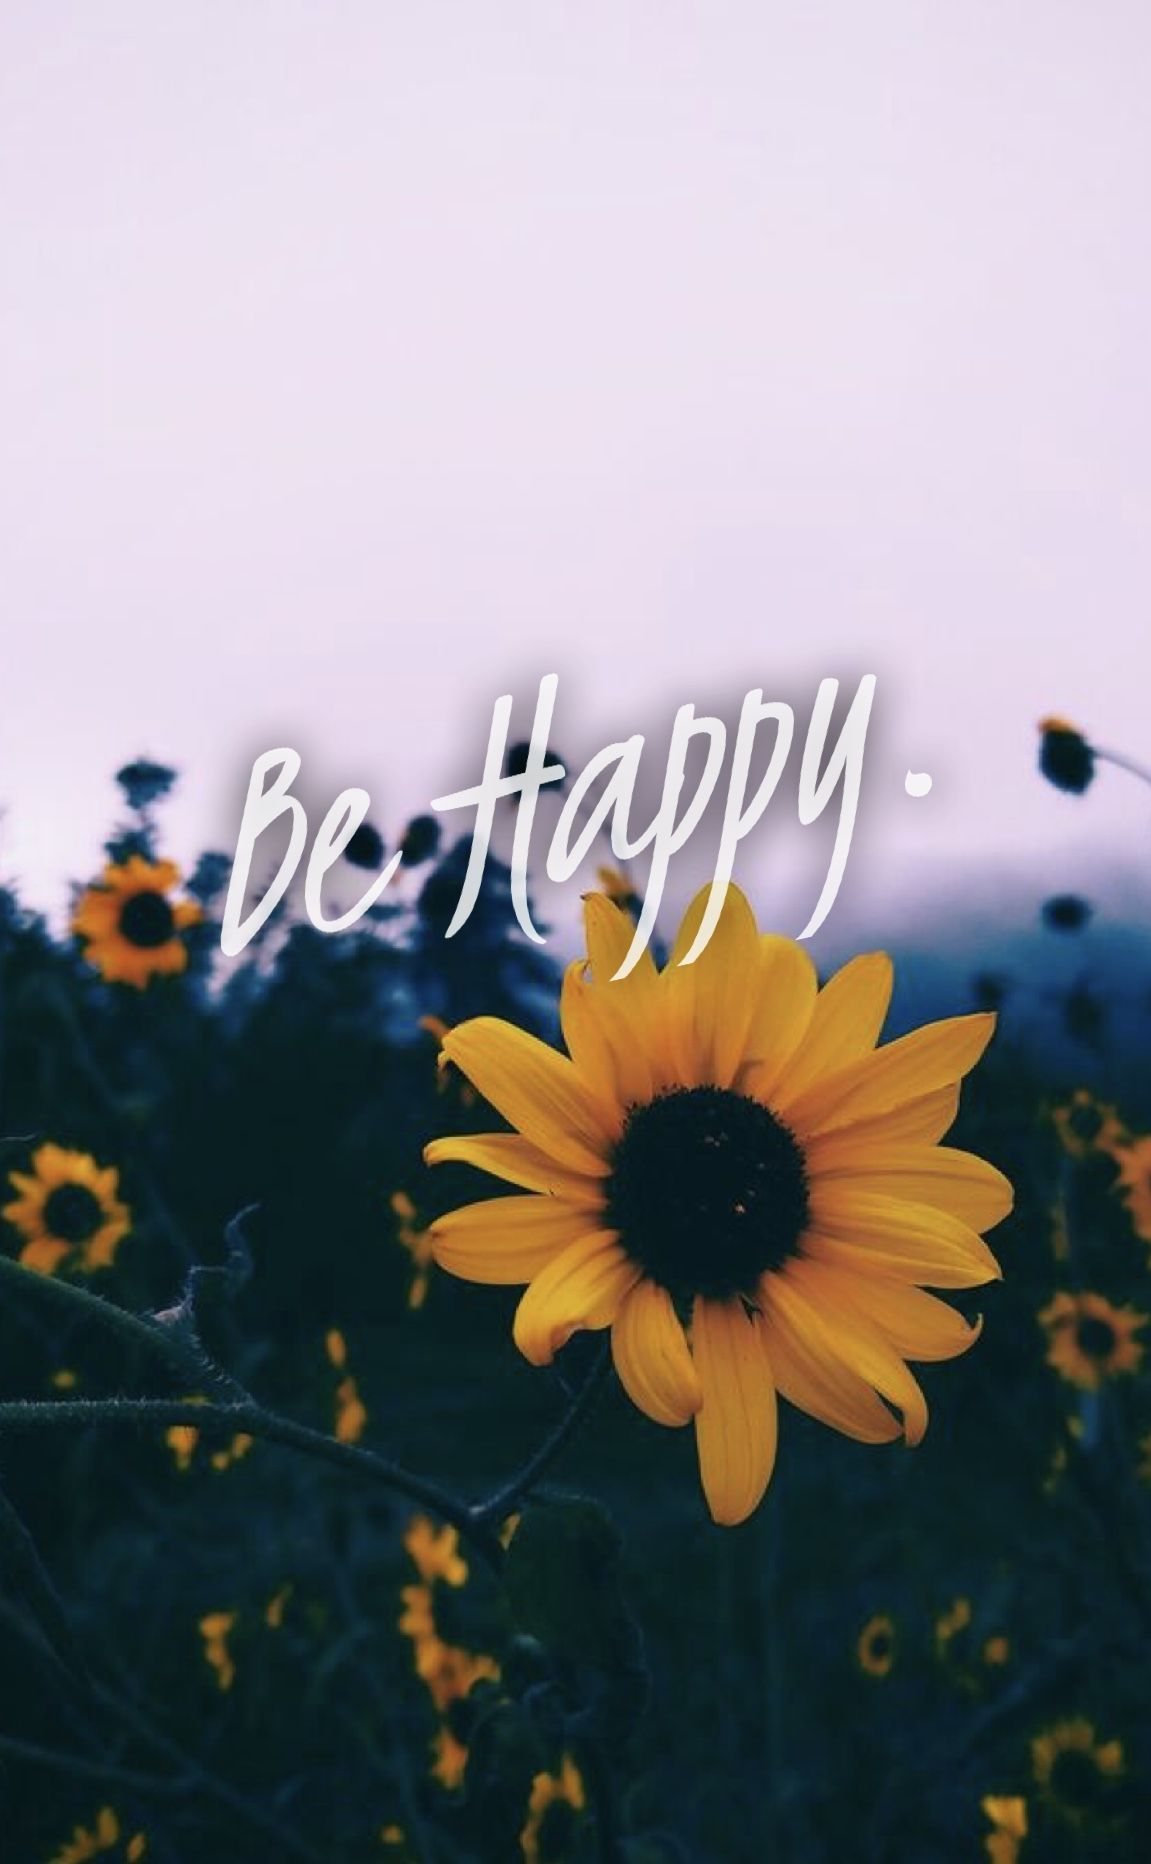 Wallpapers 💕 Sunflower wallpaper, Aesthetic iphone